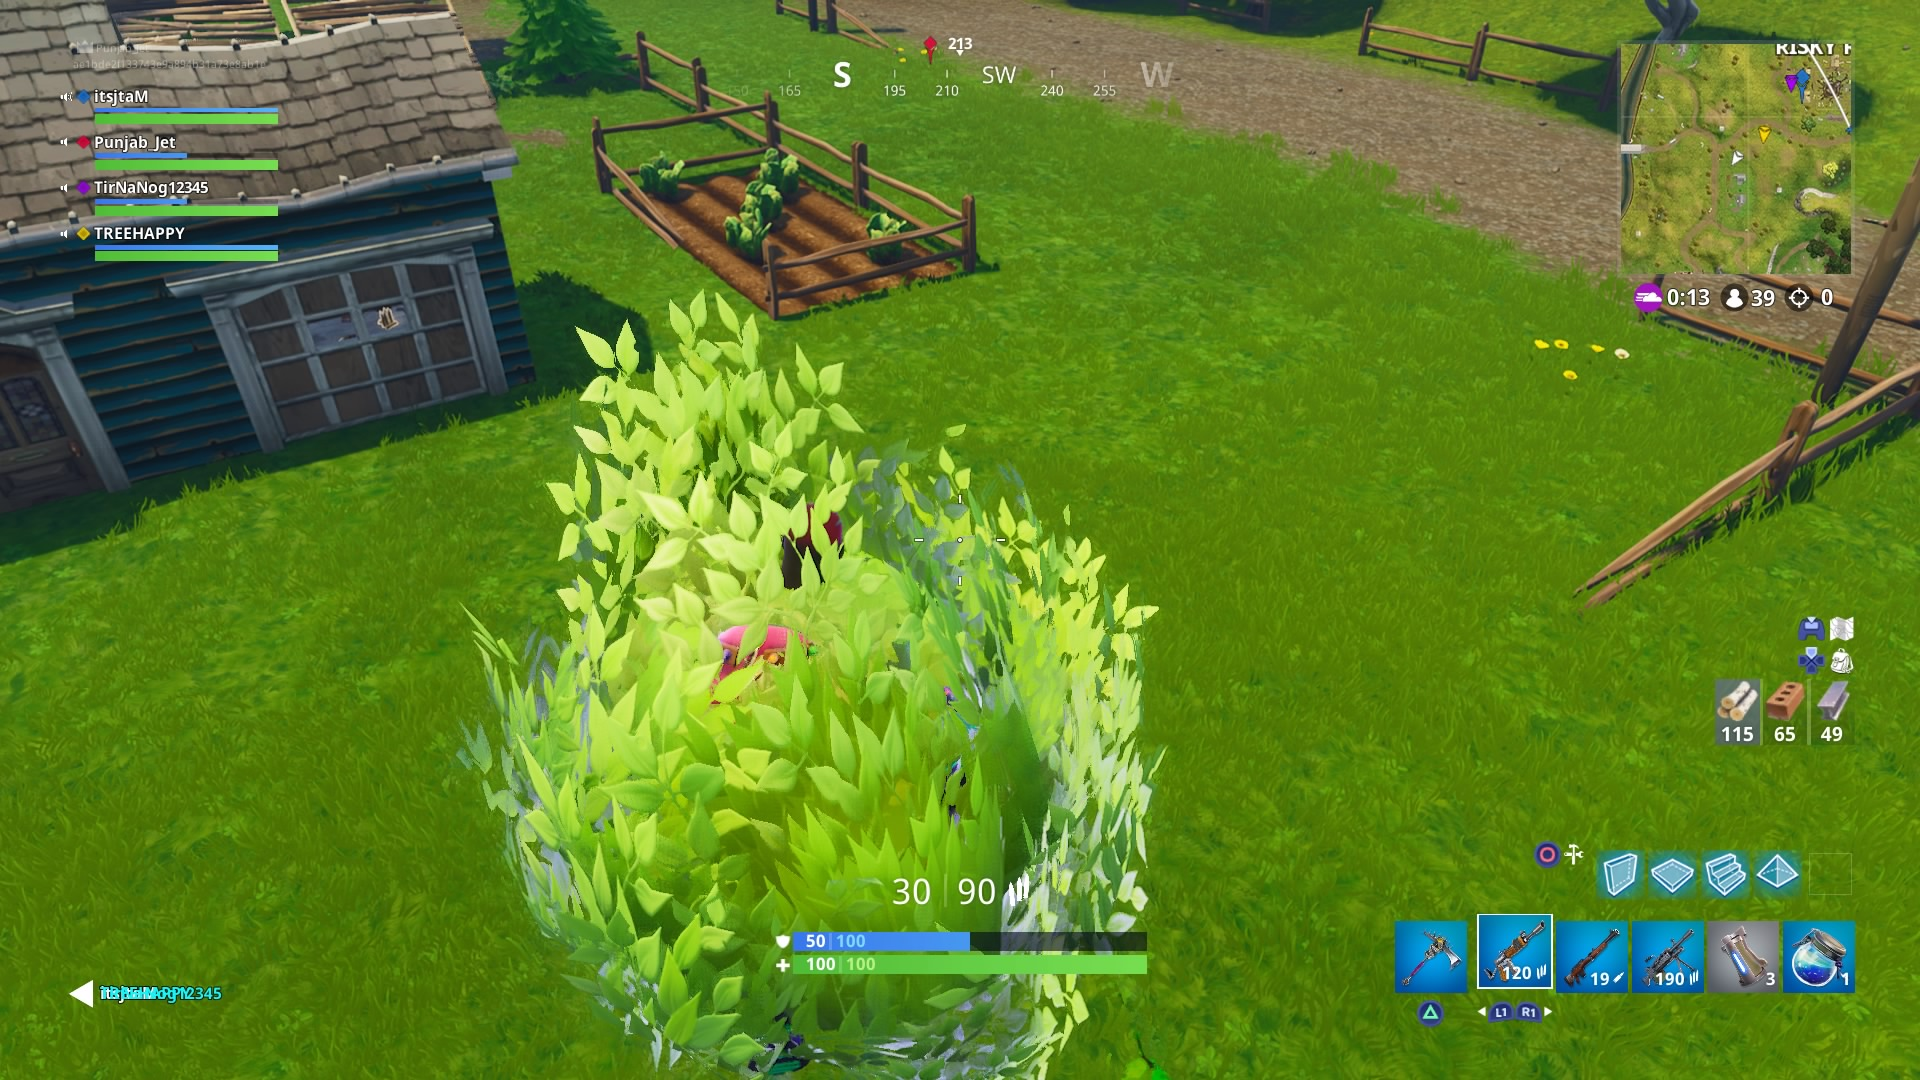 fortnite flying bush desktop wallpaper 1460